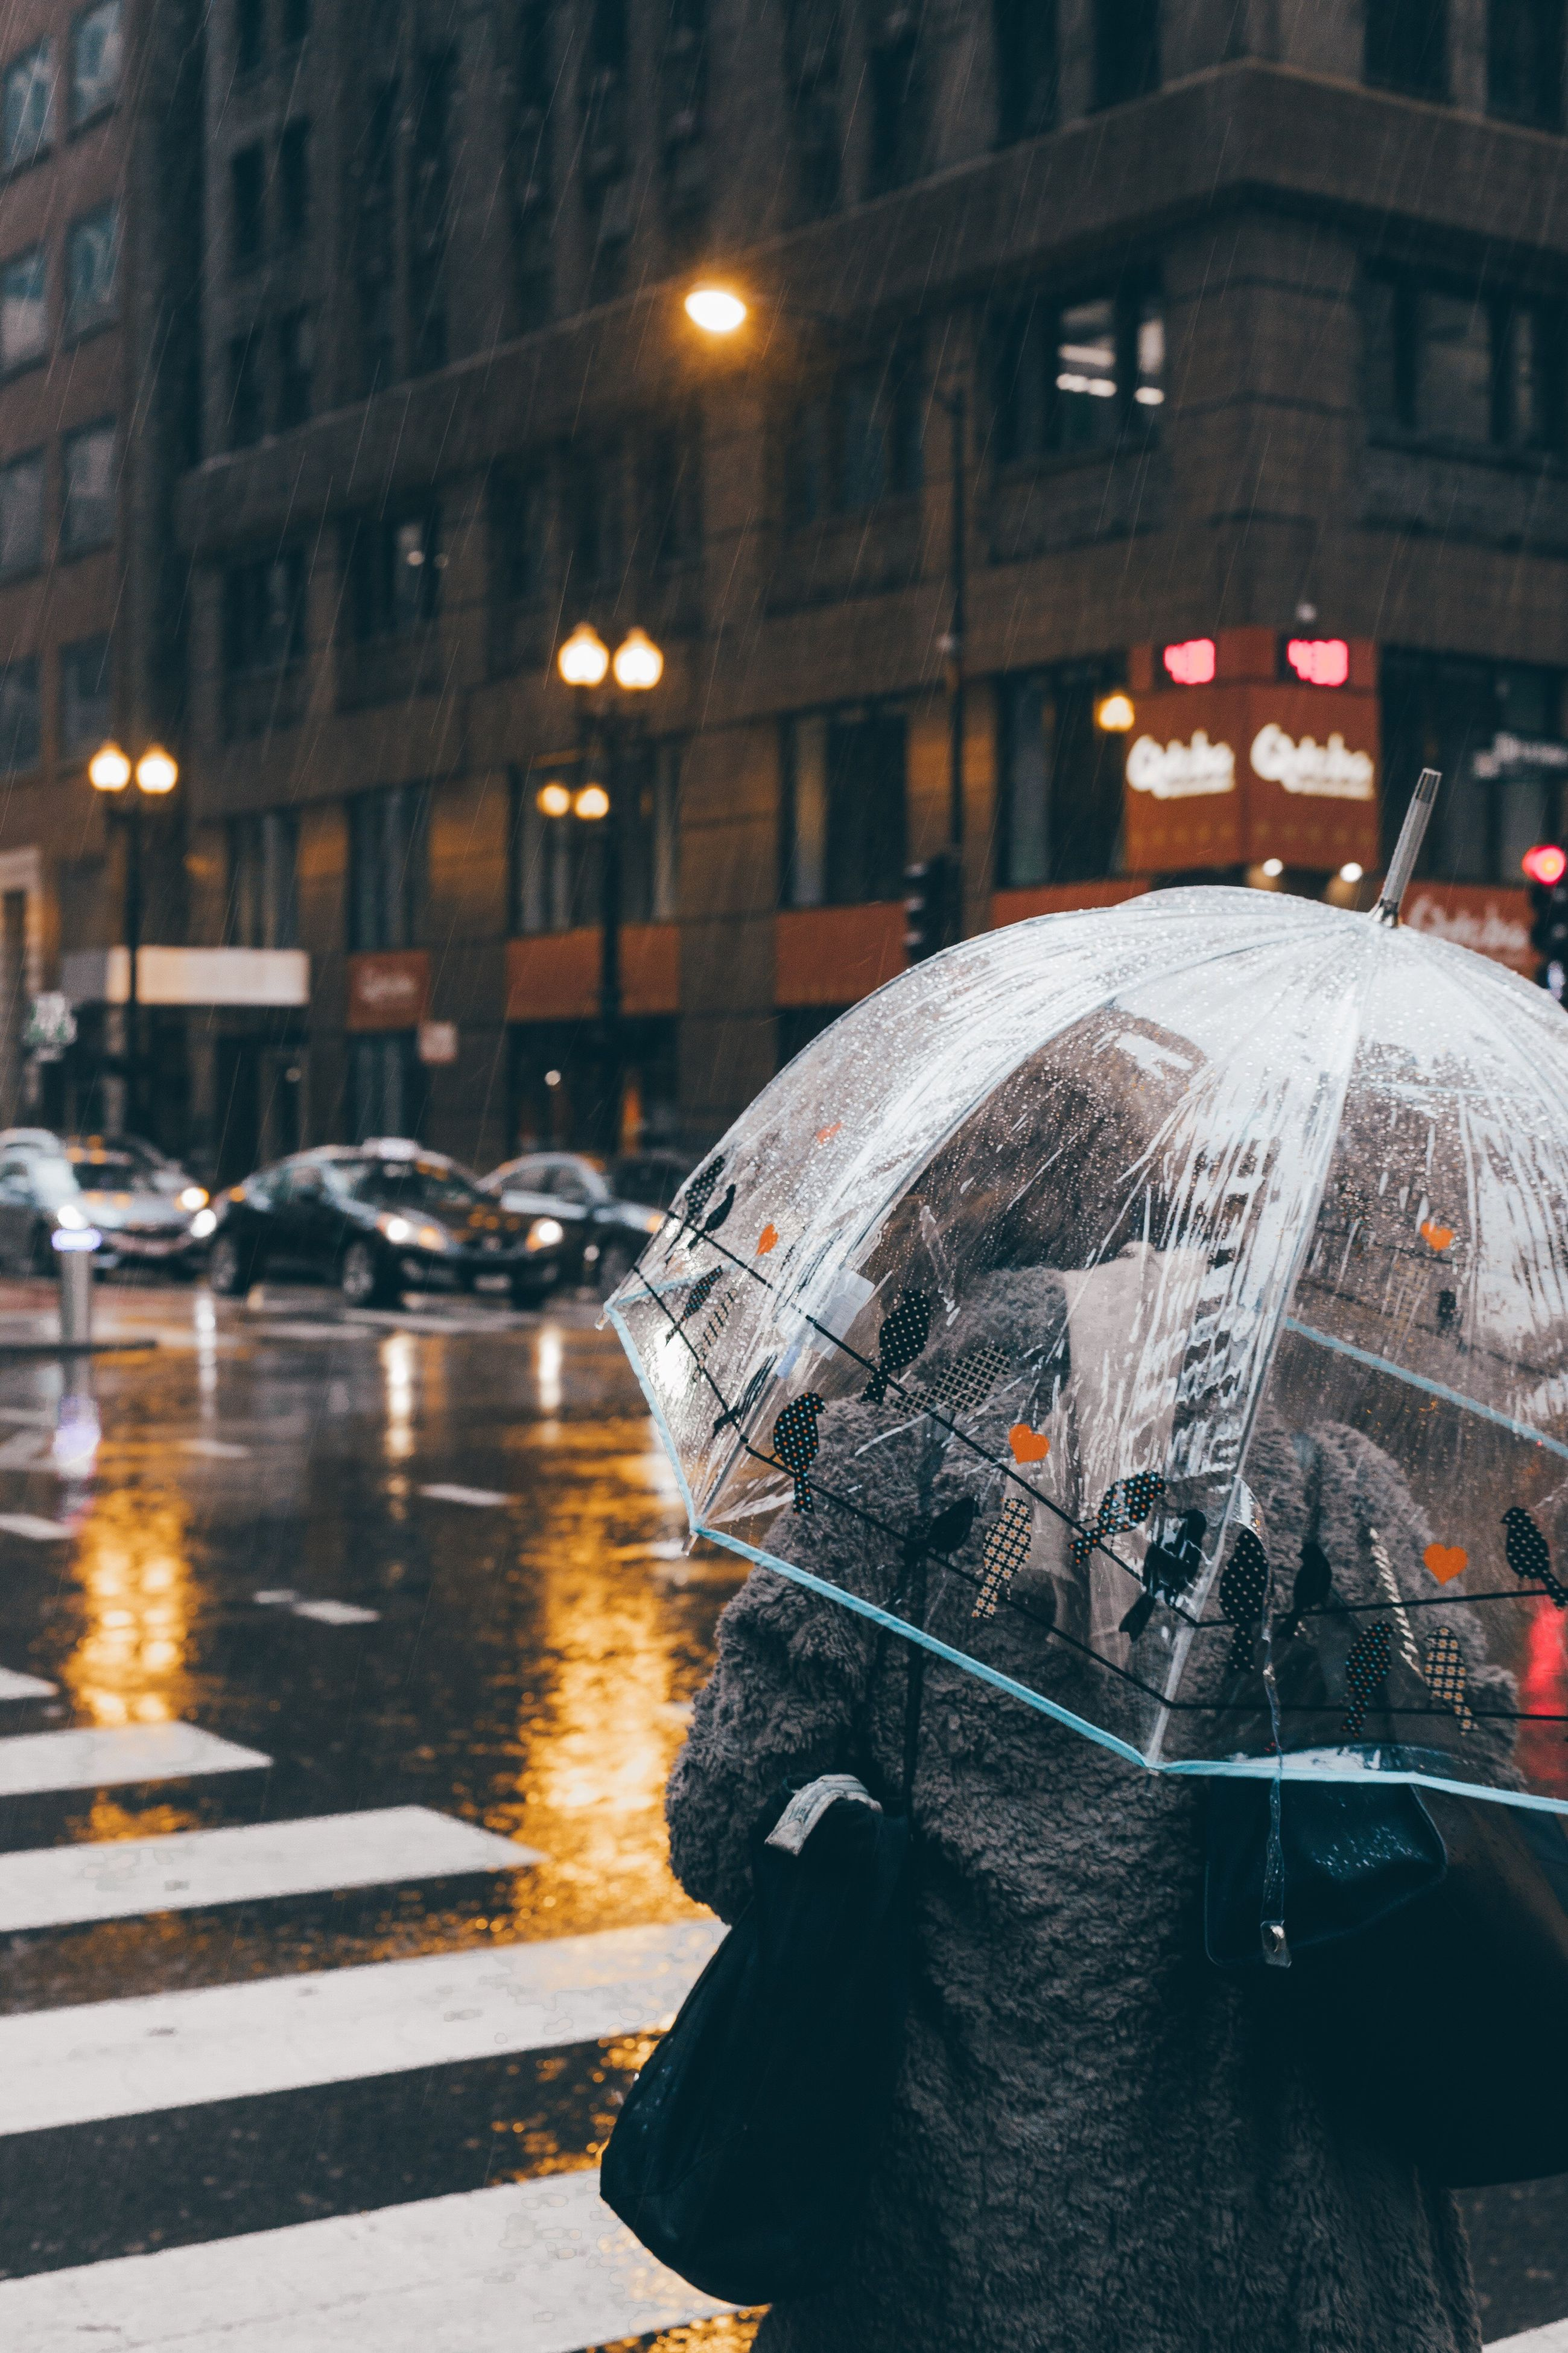 rain, weather, wet, street, rainy season, night, car, winter, city, city street, city life, cold temperature, protection, outdoors, raindrop, snow, illuminated, building exterior, built structure, road, architecture, snowing, one person, under, adult, people